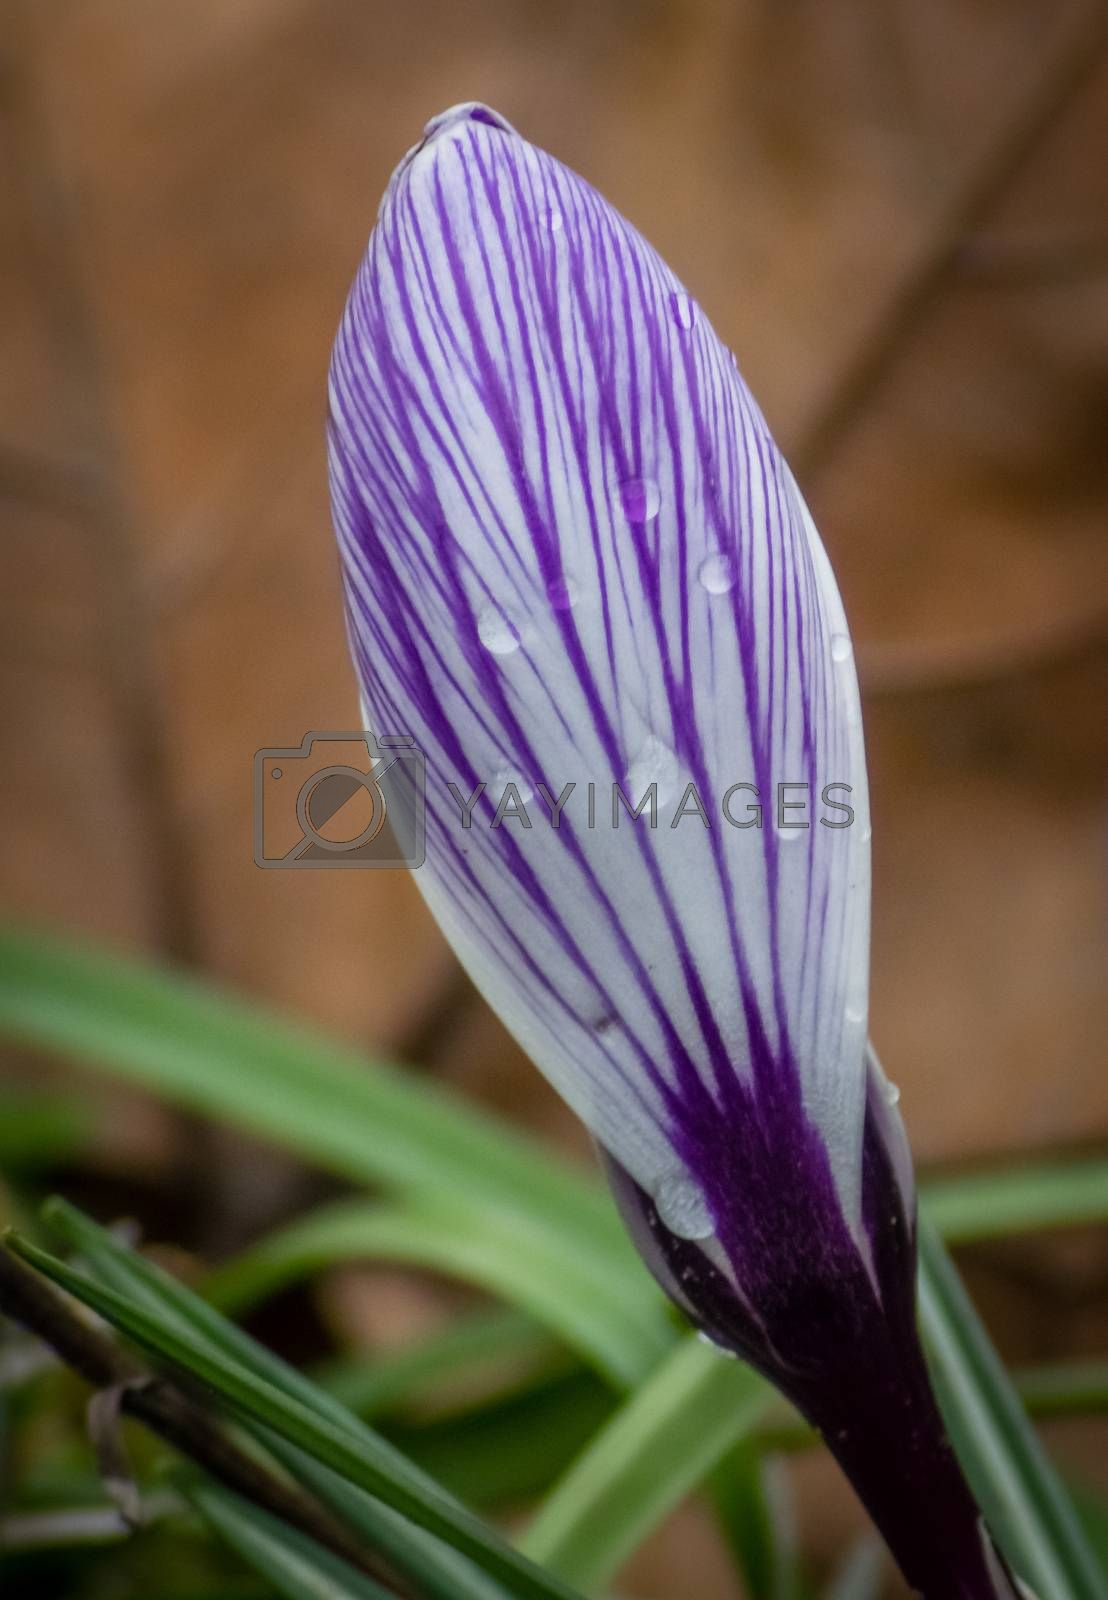 Raindrops on a closed crocus vernus bud on a meadow in spring